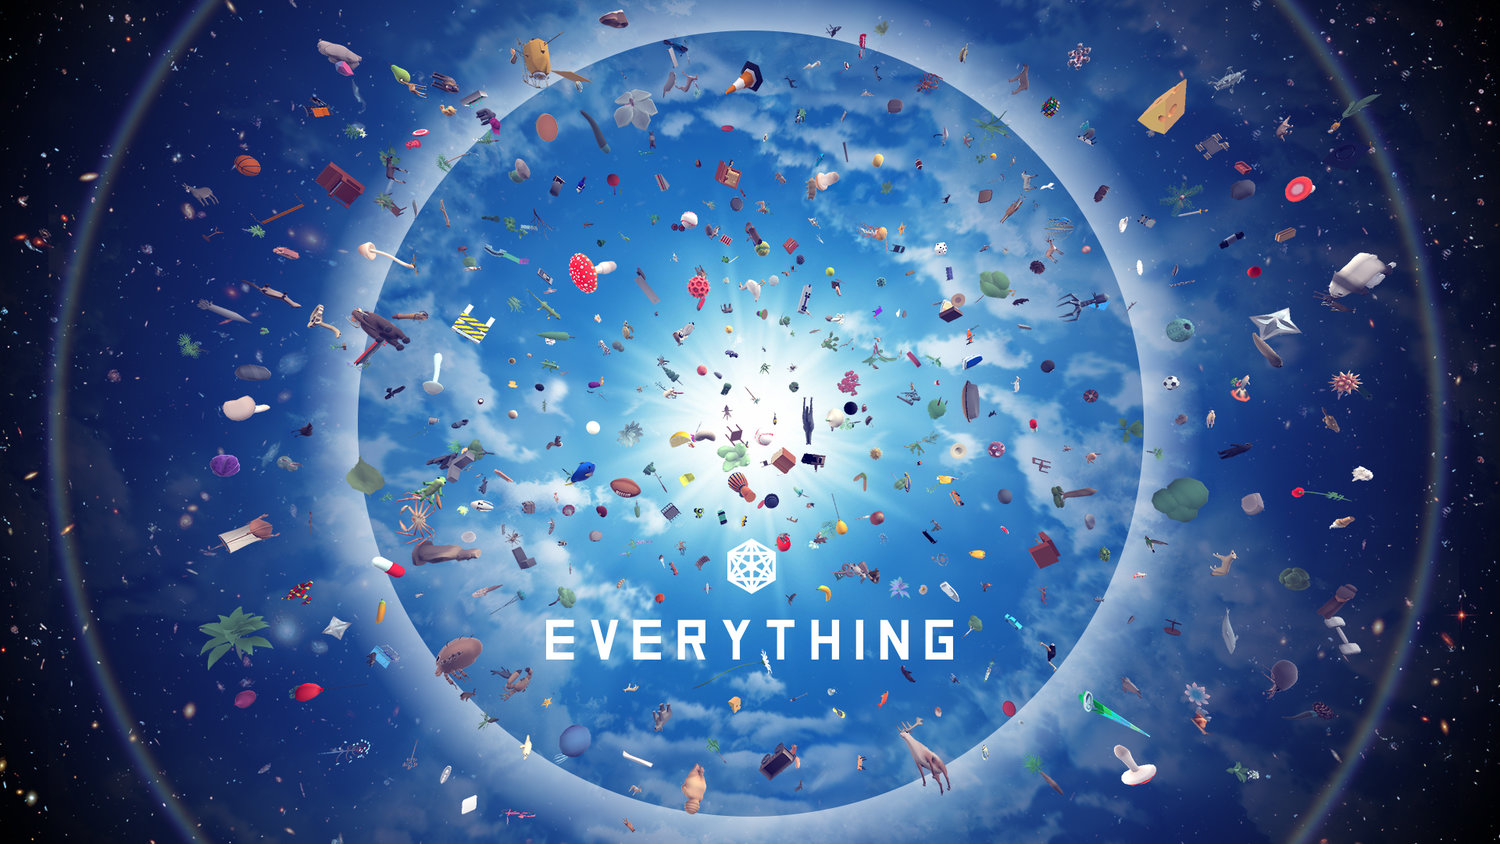 everything out now on ps4 pc mac linux everythinggame